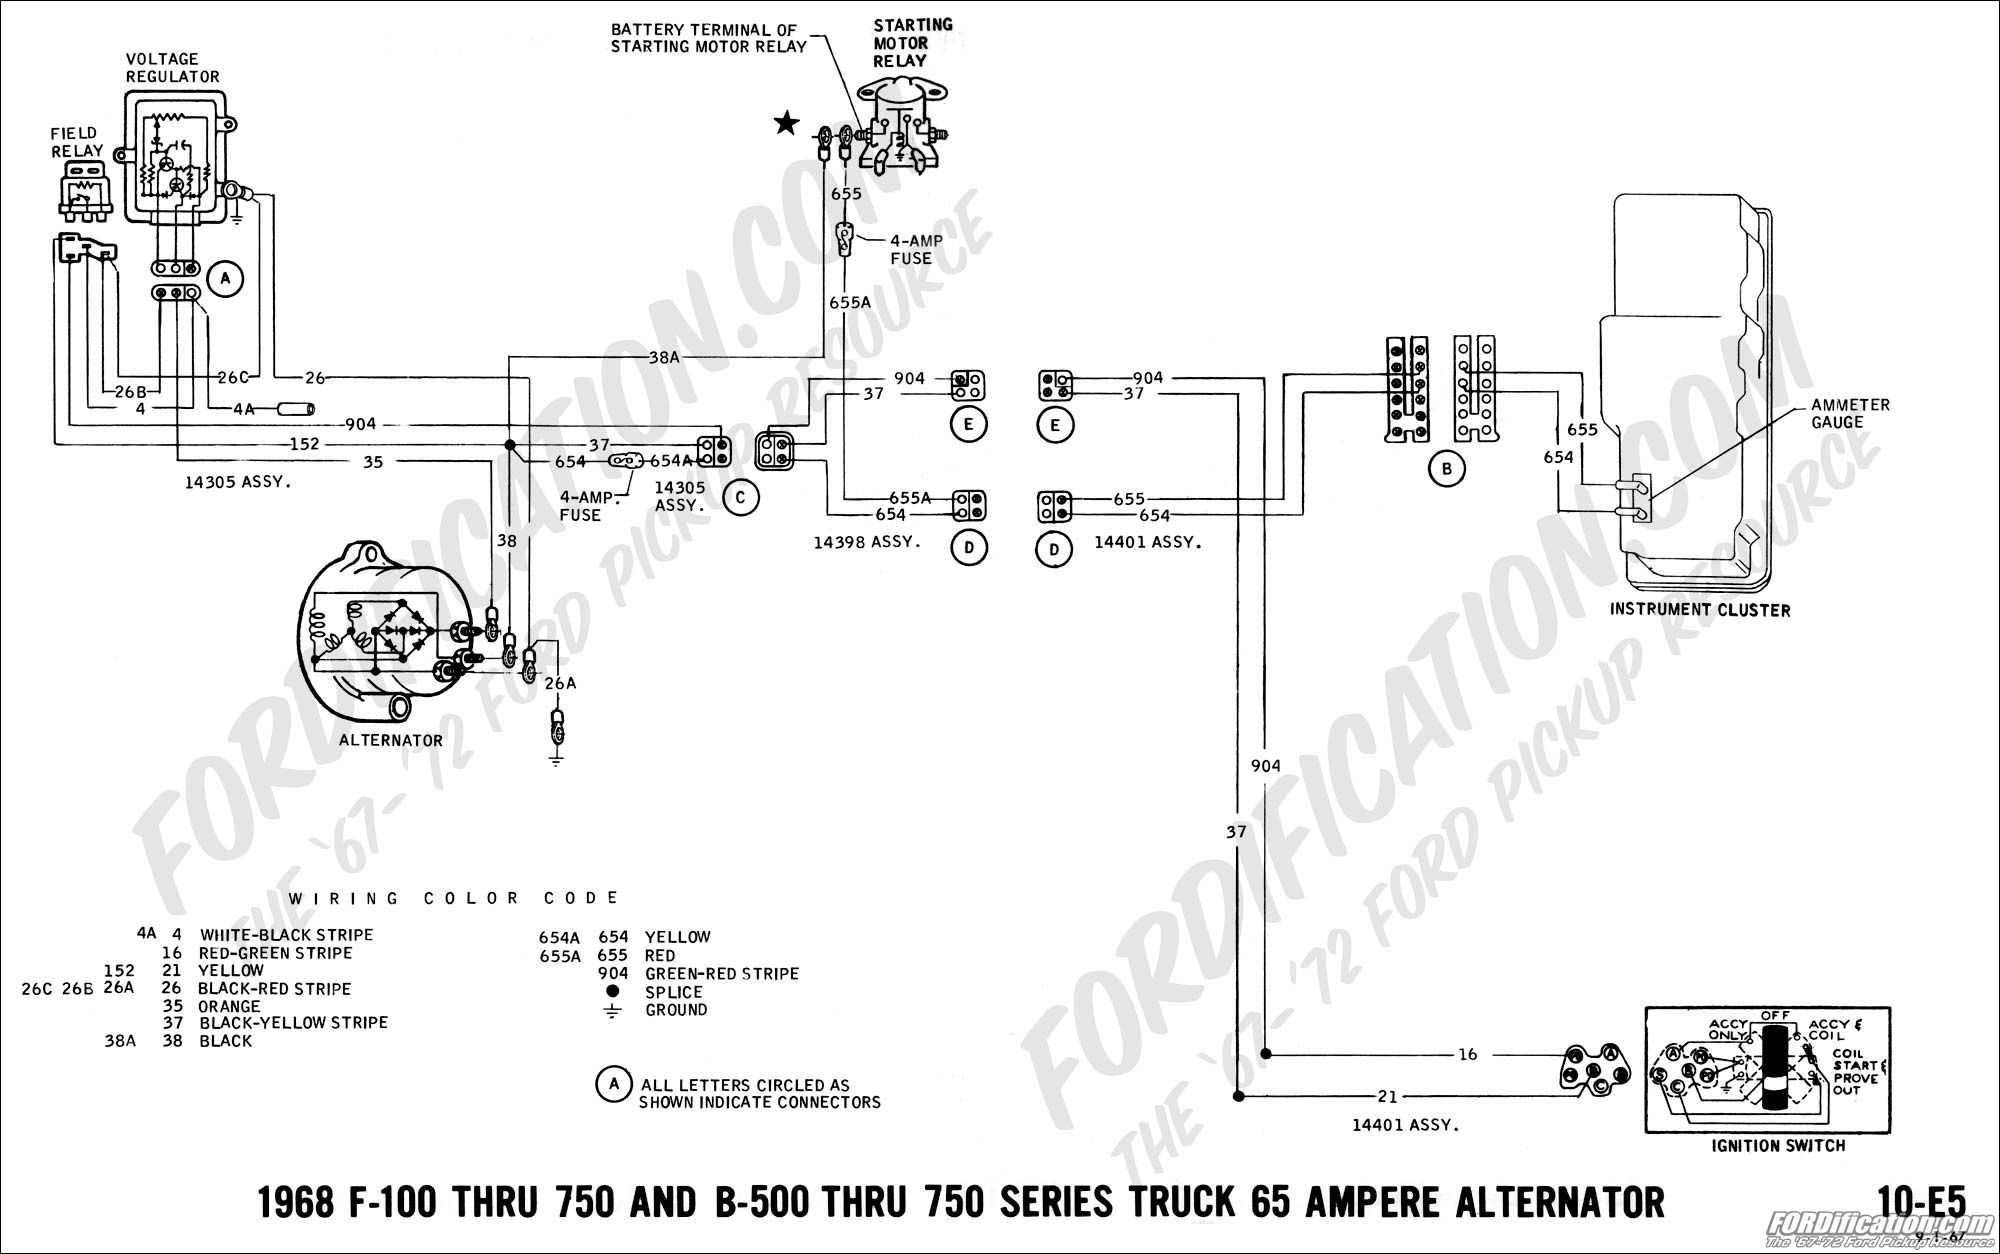 1971 Ford Alternator Wiring Diagram Simple Wiring Diagram Ford Generator Wiring  Diagram 1972 Ford Regulator Wiring Diagram